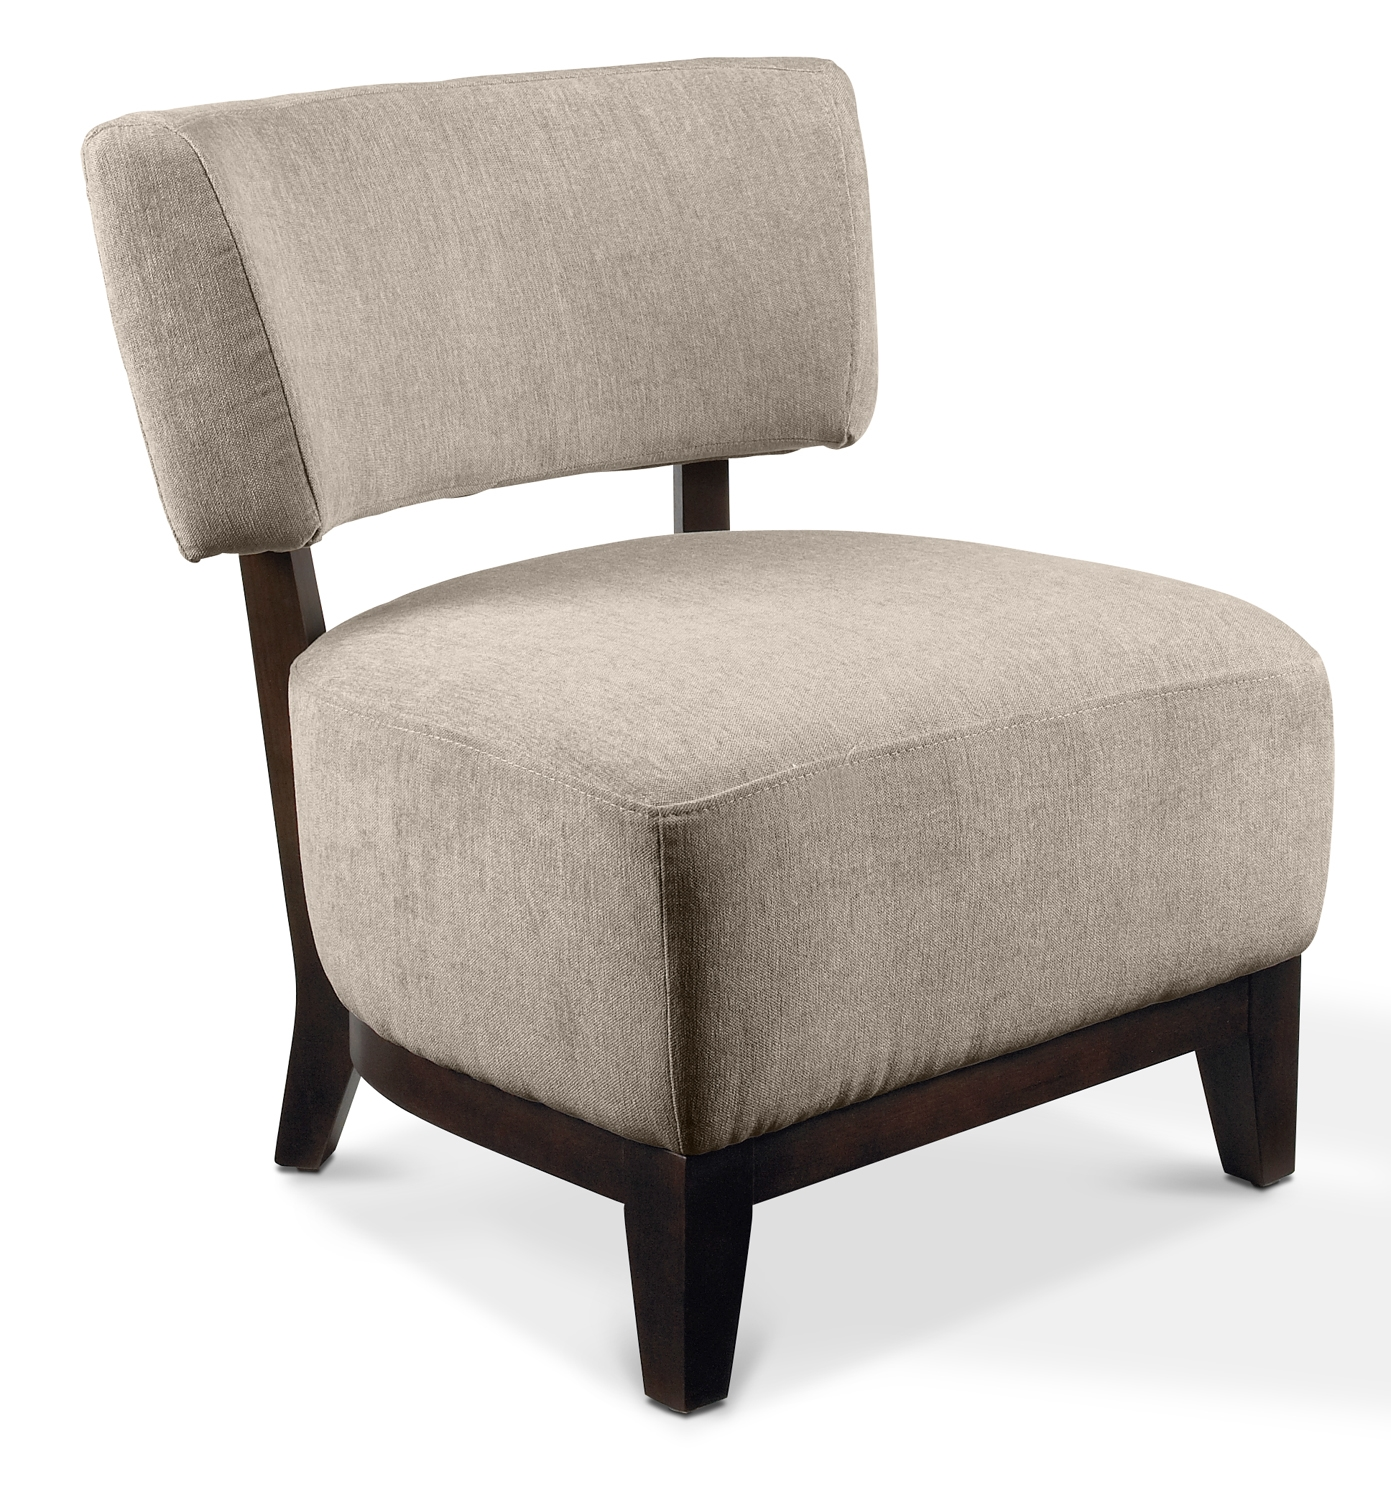 decor: accent chairs under 100 | walmart living room sets | target